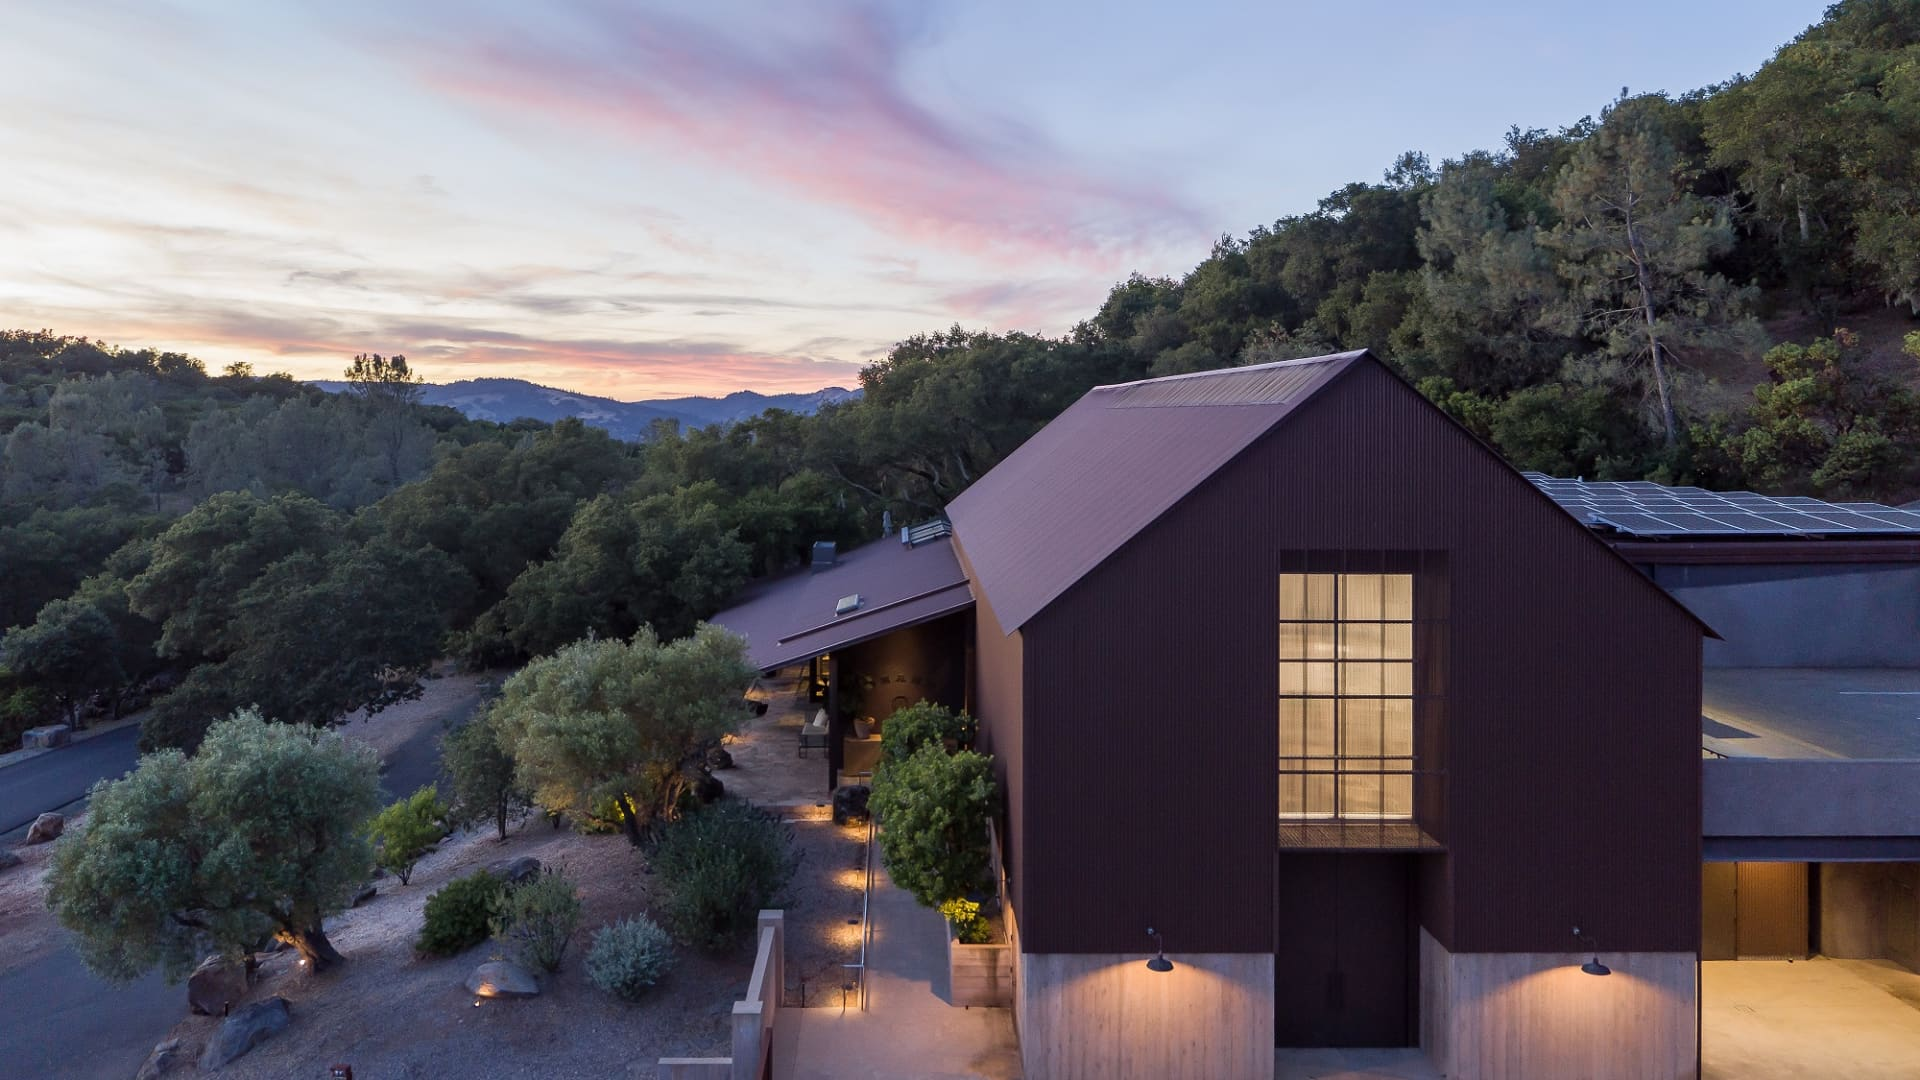 Brand features a winery and 15 planted acres of grapes on a 110-acre Napa Valley estate.